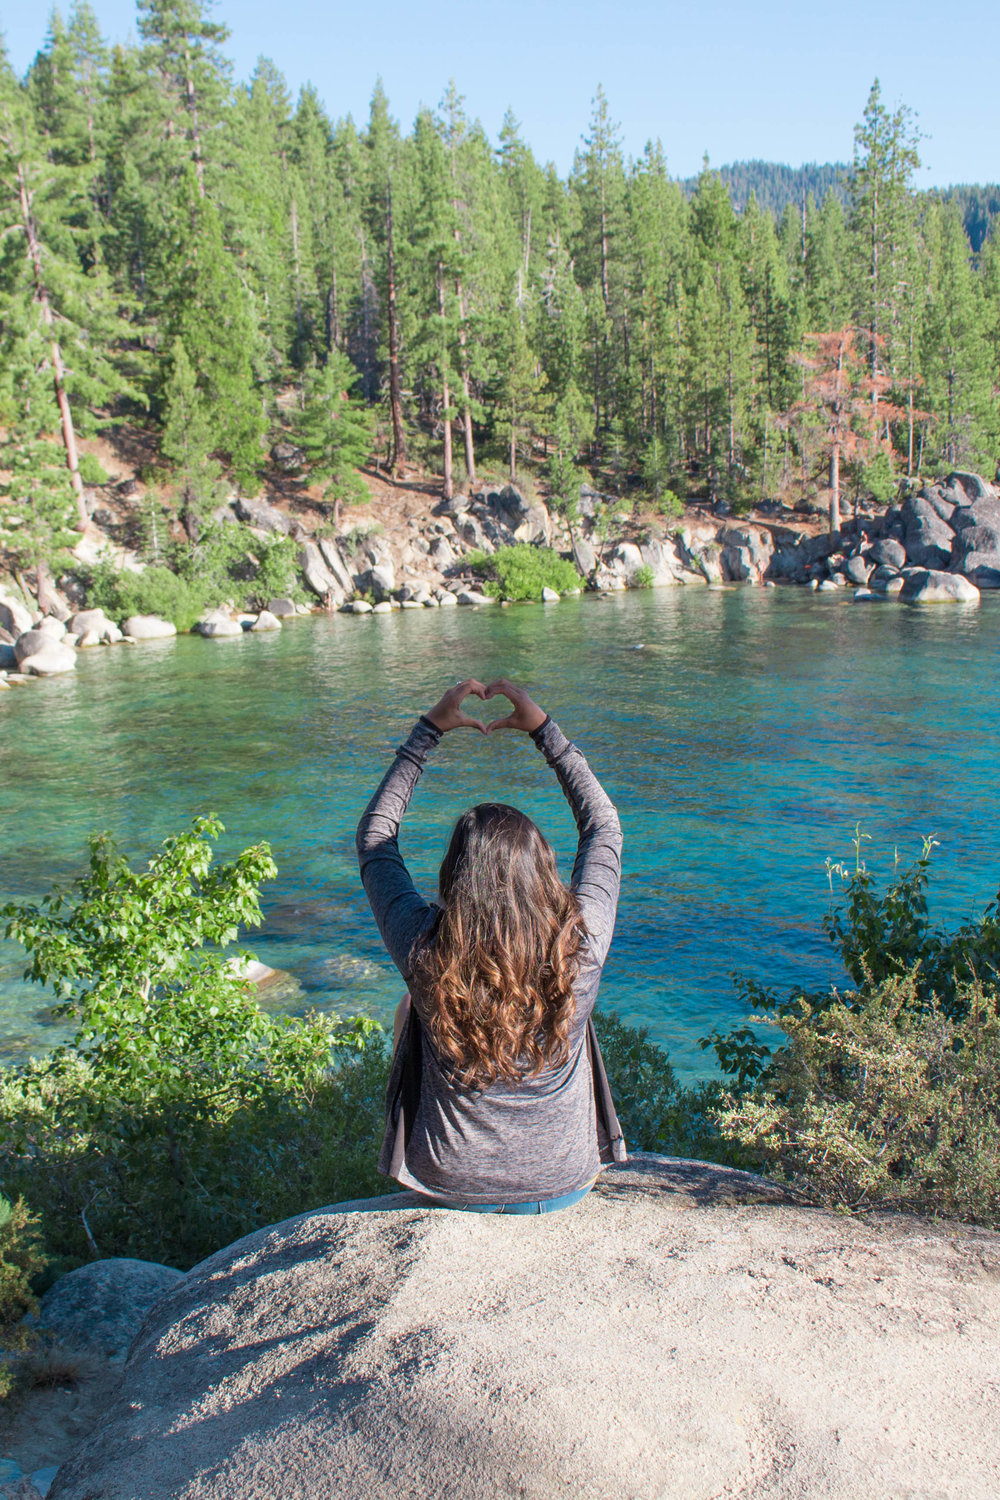 SUMMER TRAVEL GUIDE TO SOUTH LAKE TAHOE